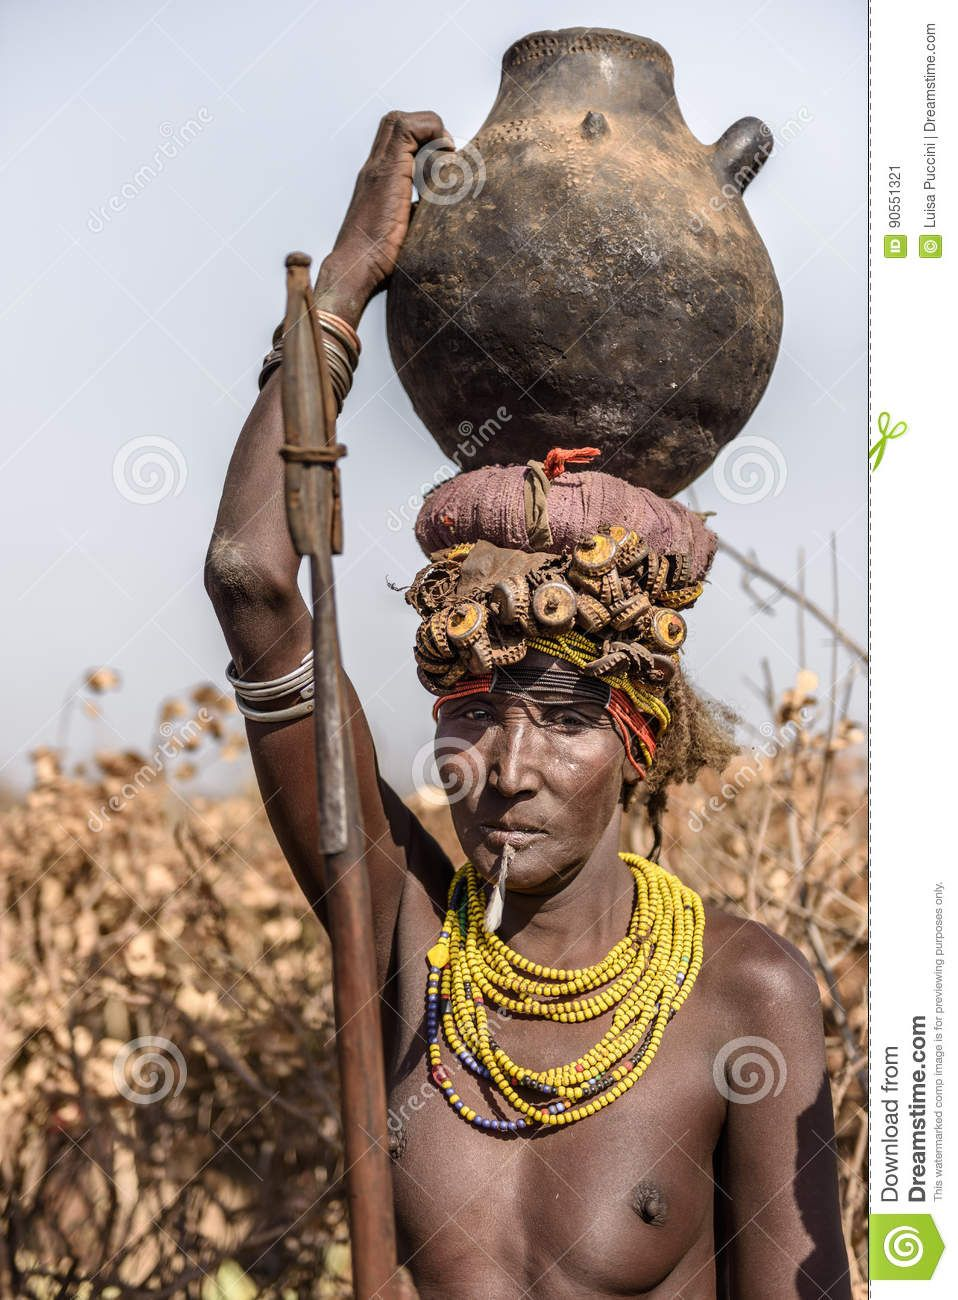 Africa . The Dassanech of Ethiopia live thousands of miles